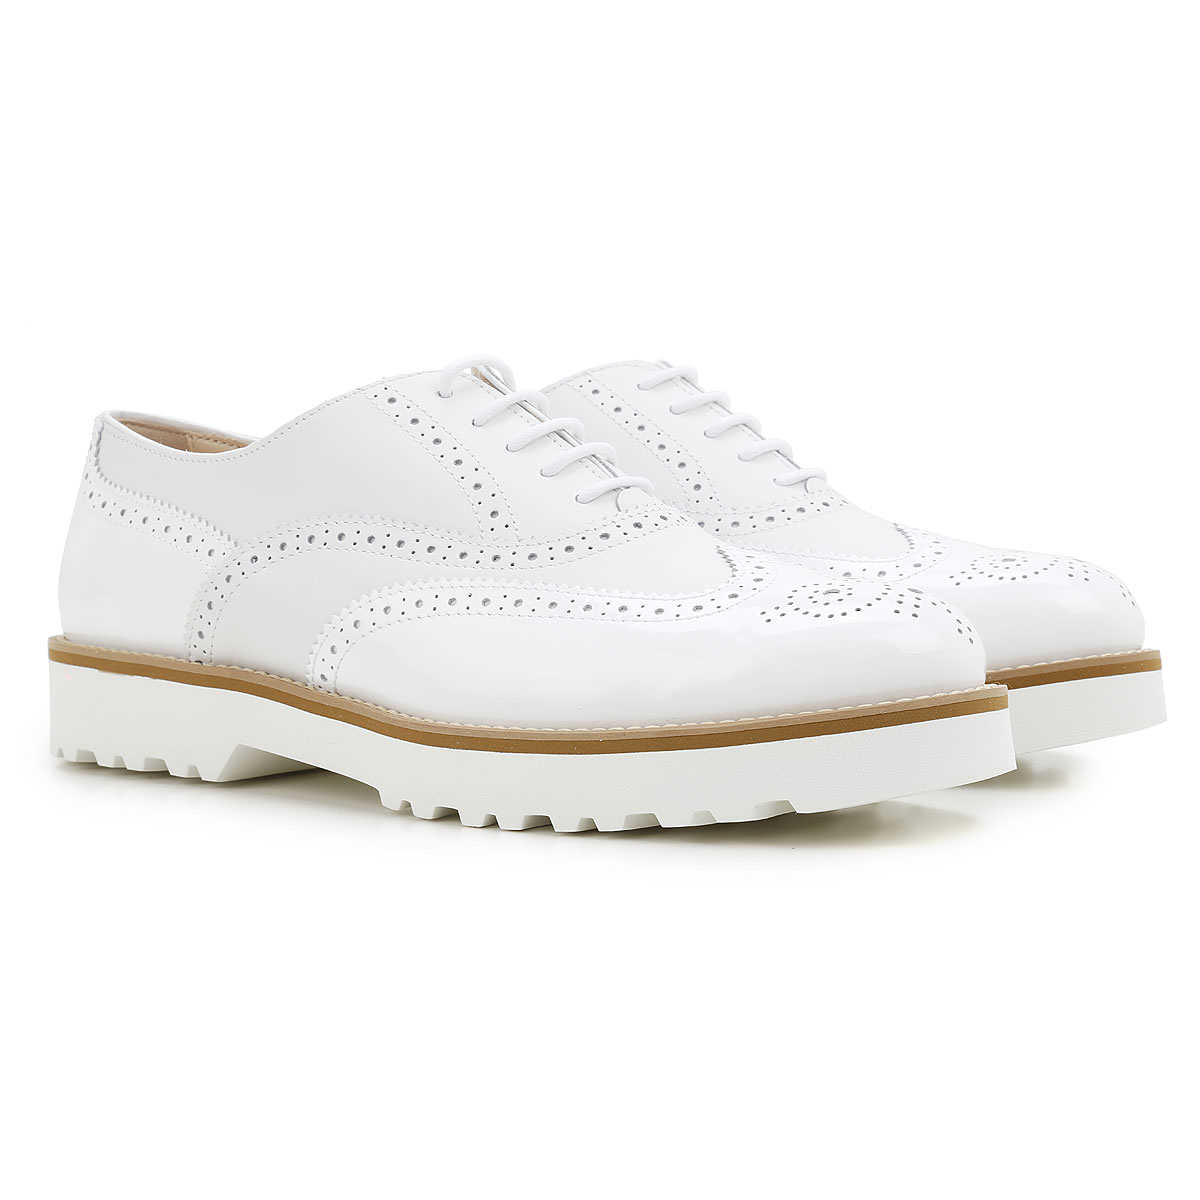 Hogan Brogues Oxford Shoes On Sale White DK - GOOFASH - Womens LEATHER SHOES